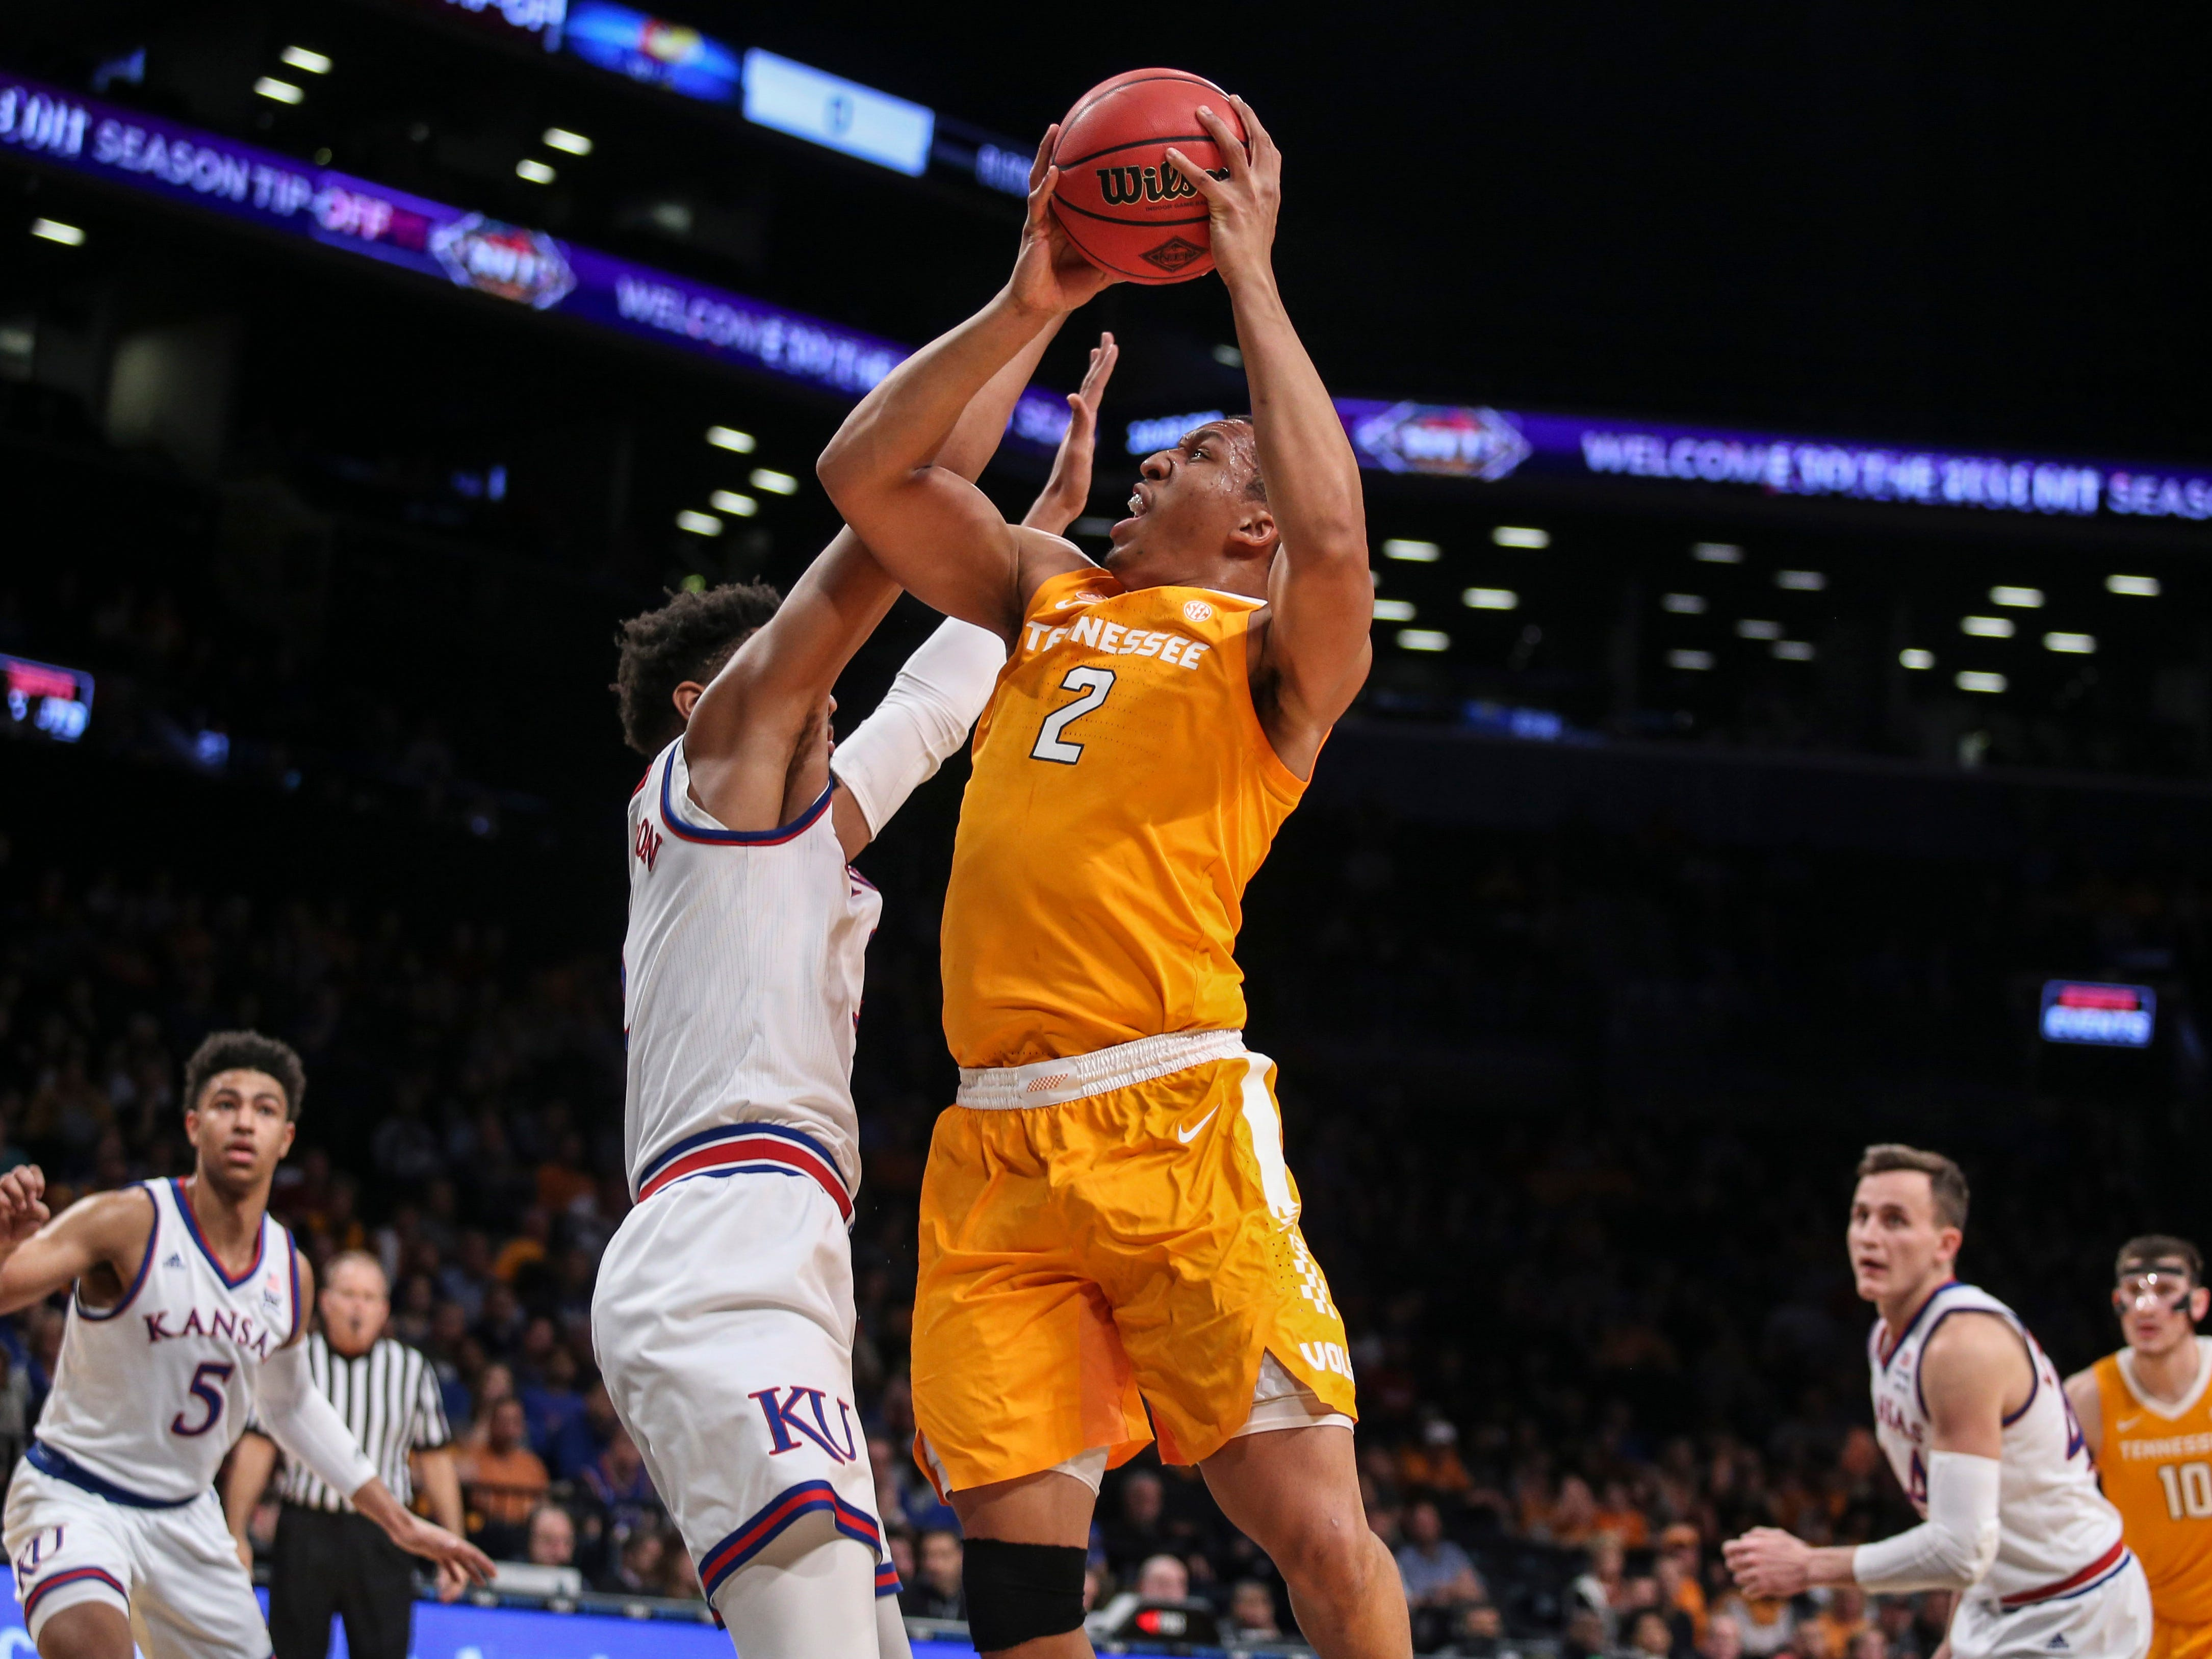 Nov 23, 2018; Brooklyn, NY, USA; Tennessee Volunteers forward Grant Williams (2) puts up a shot in the first half against the Kansas Jayhawks in the championship game of the NIT Season Tipoff at Barclays Center. Mandatory Credit: Wendell Cruz-USA TODAY Sports